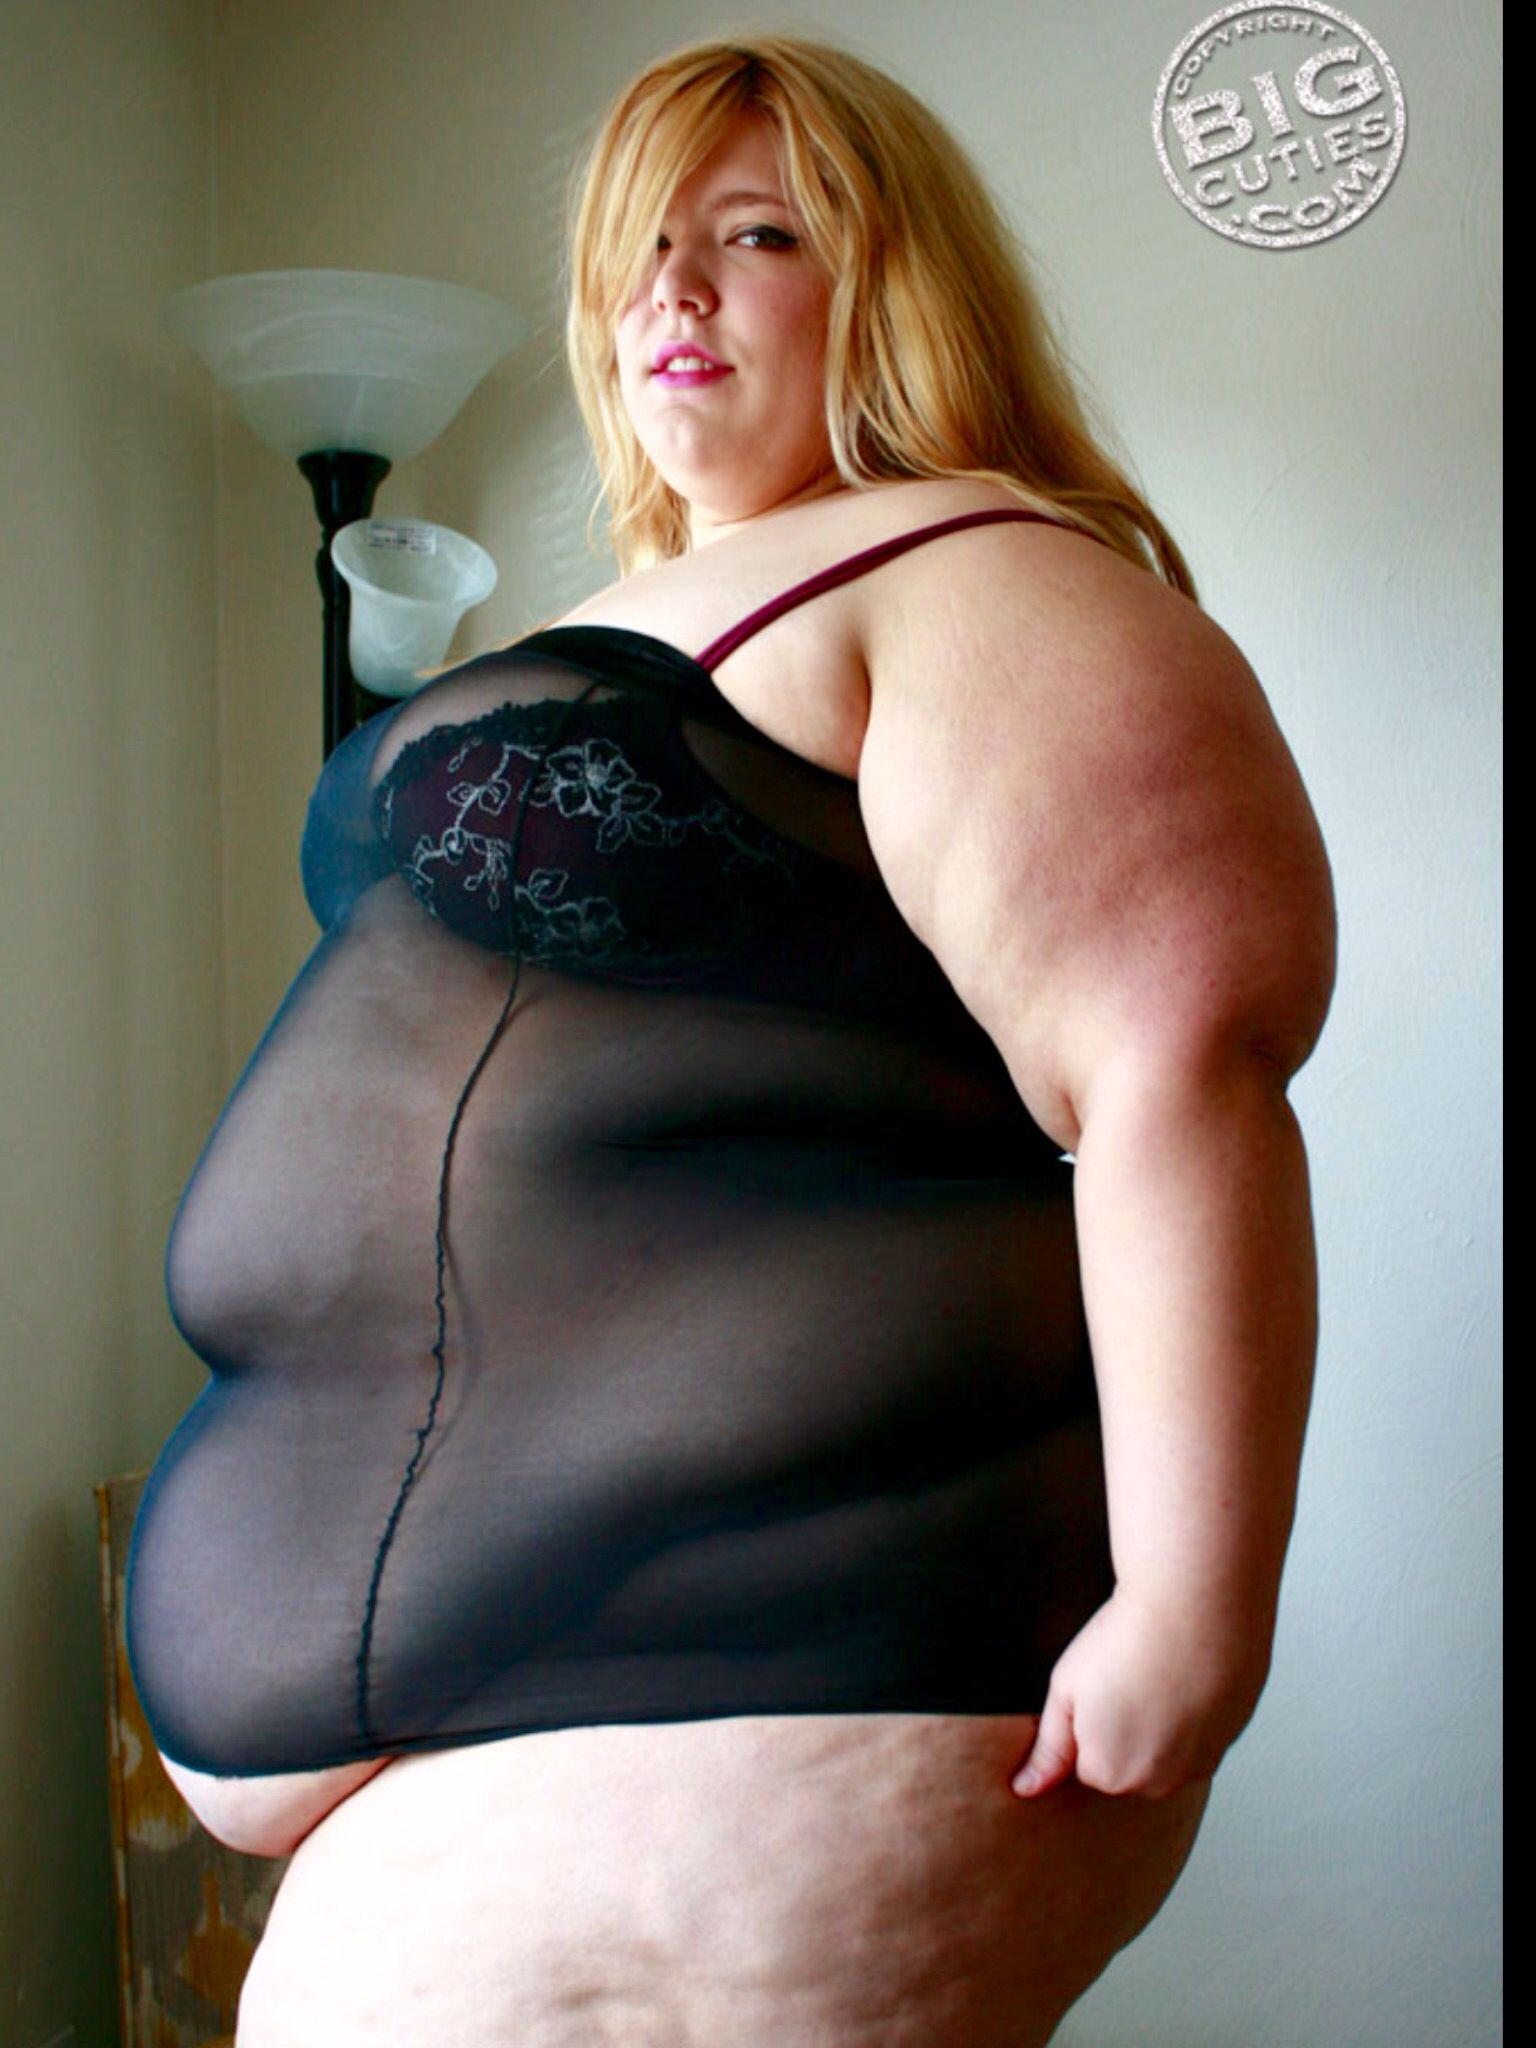 Five stars bbw for lucky guy